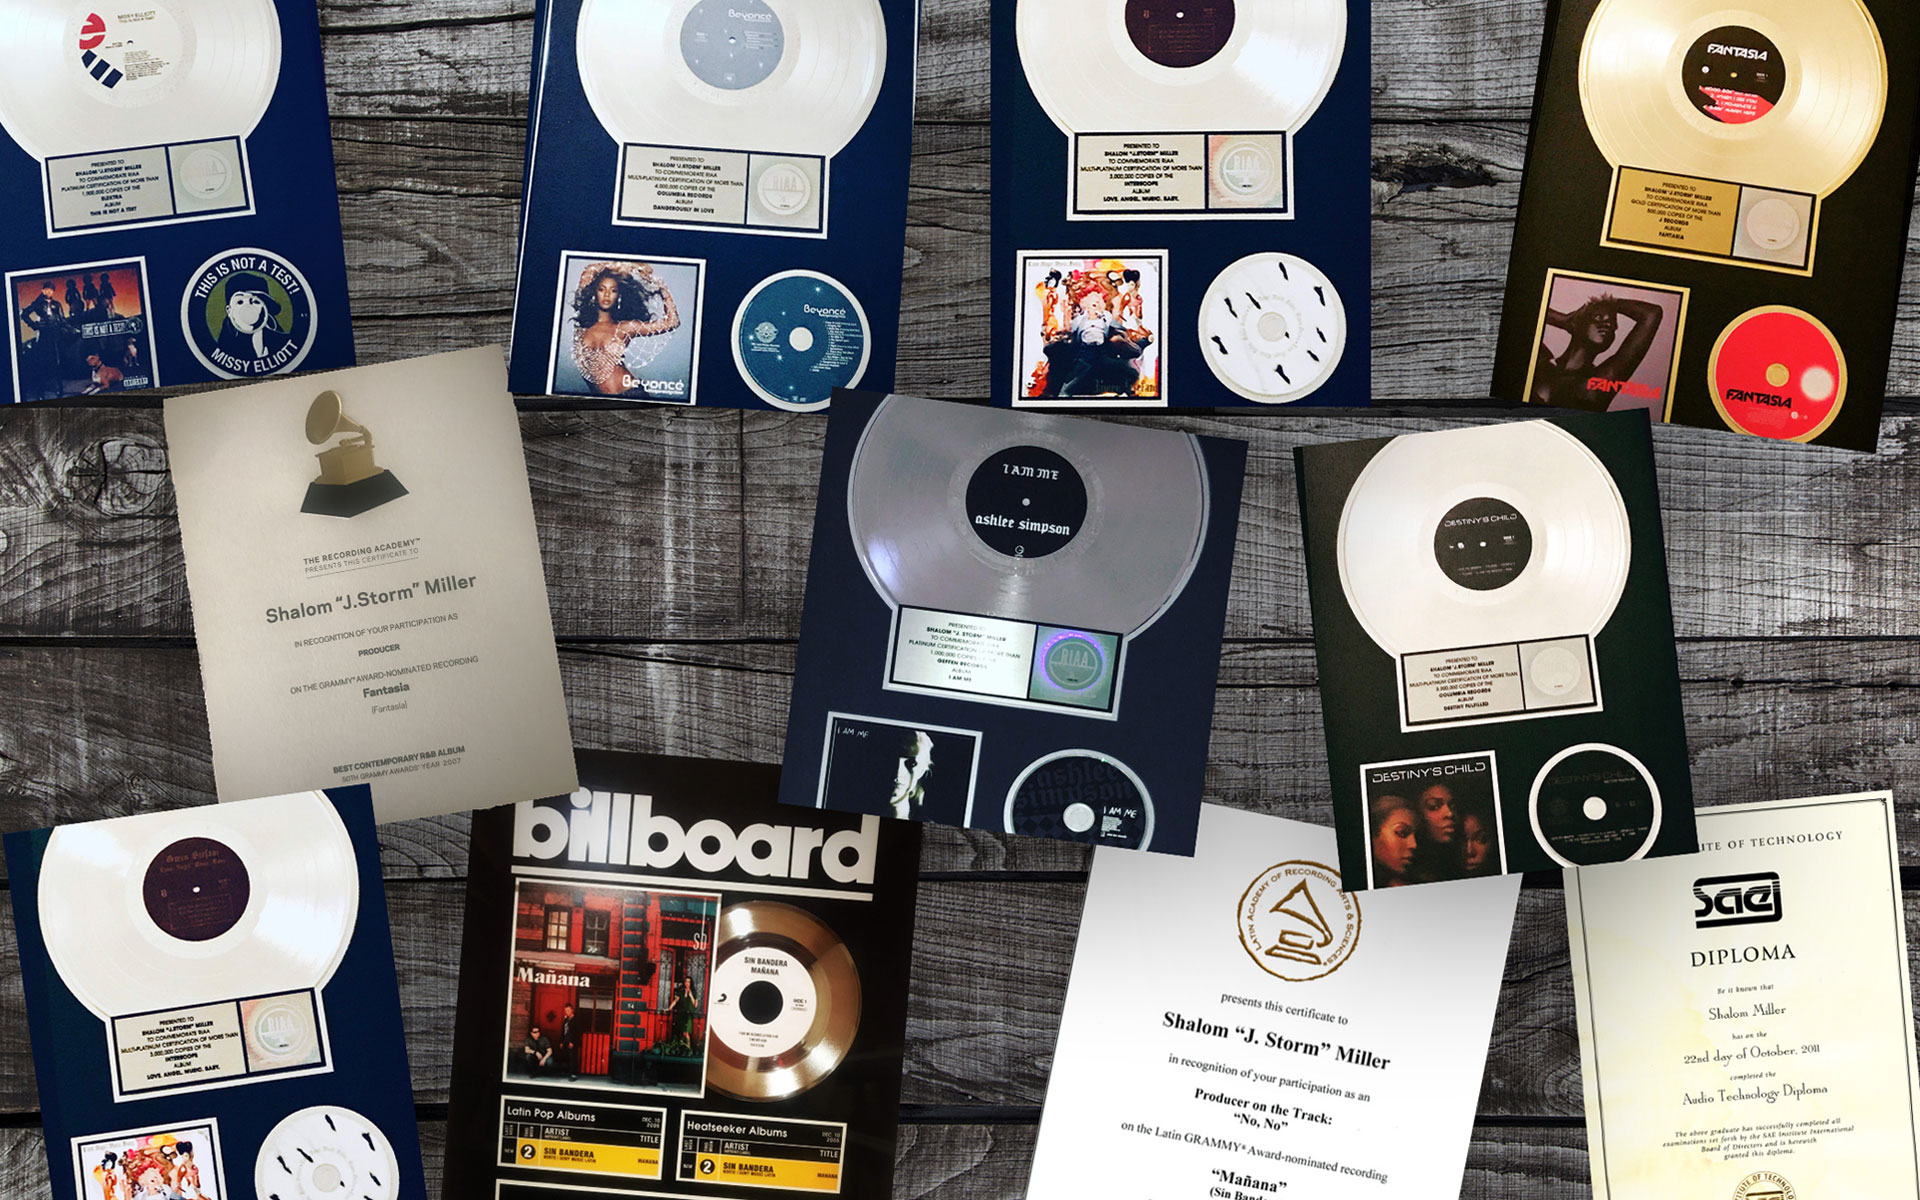 Shalom's awards including gold, platinum, and multi-platinum records, Grammy awards, a diploma from the SAE institute, and more.